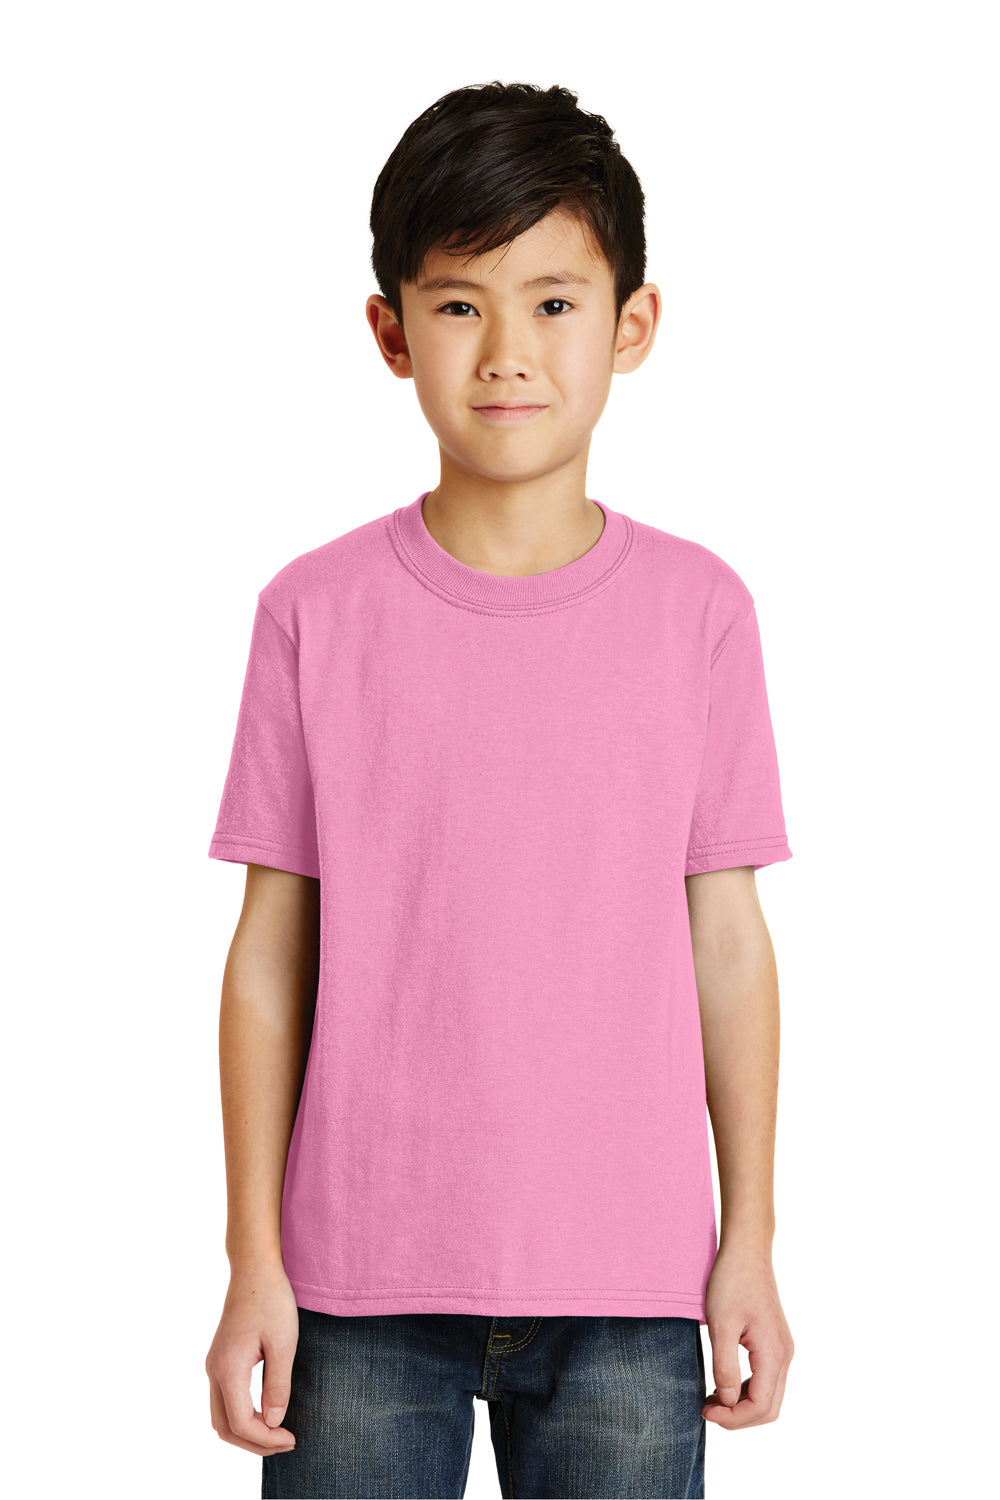 Port & Company PC55Y Youth Core Short Sleeve Crewneck T-Shirt Candy Pink Front